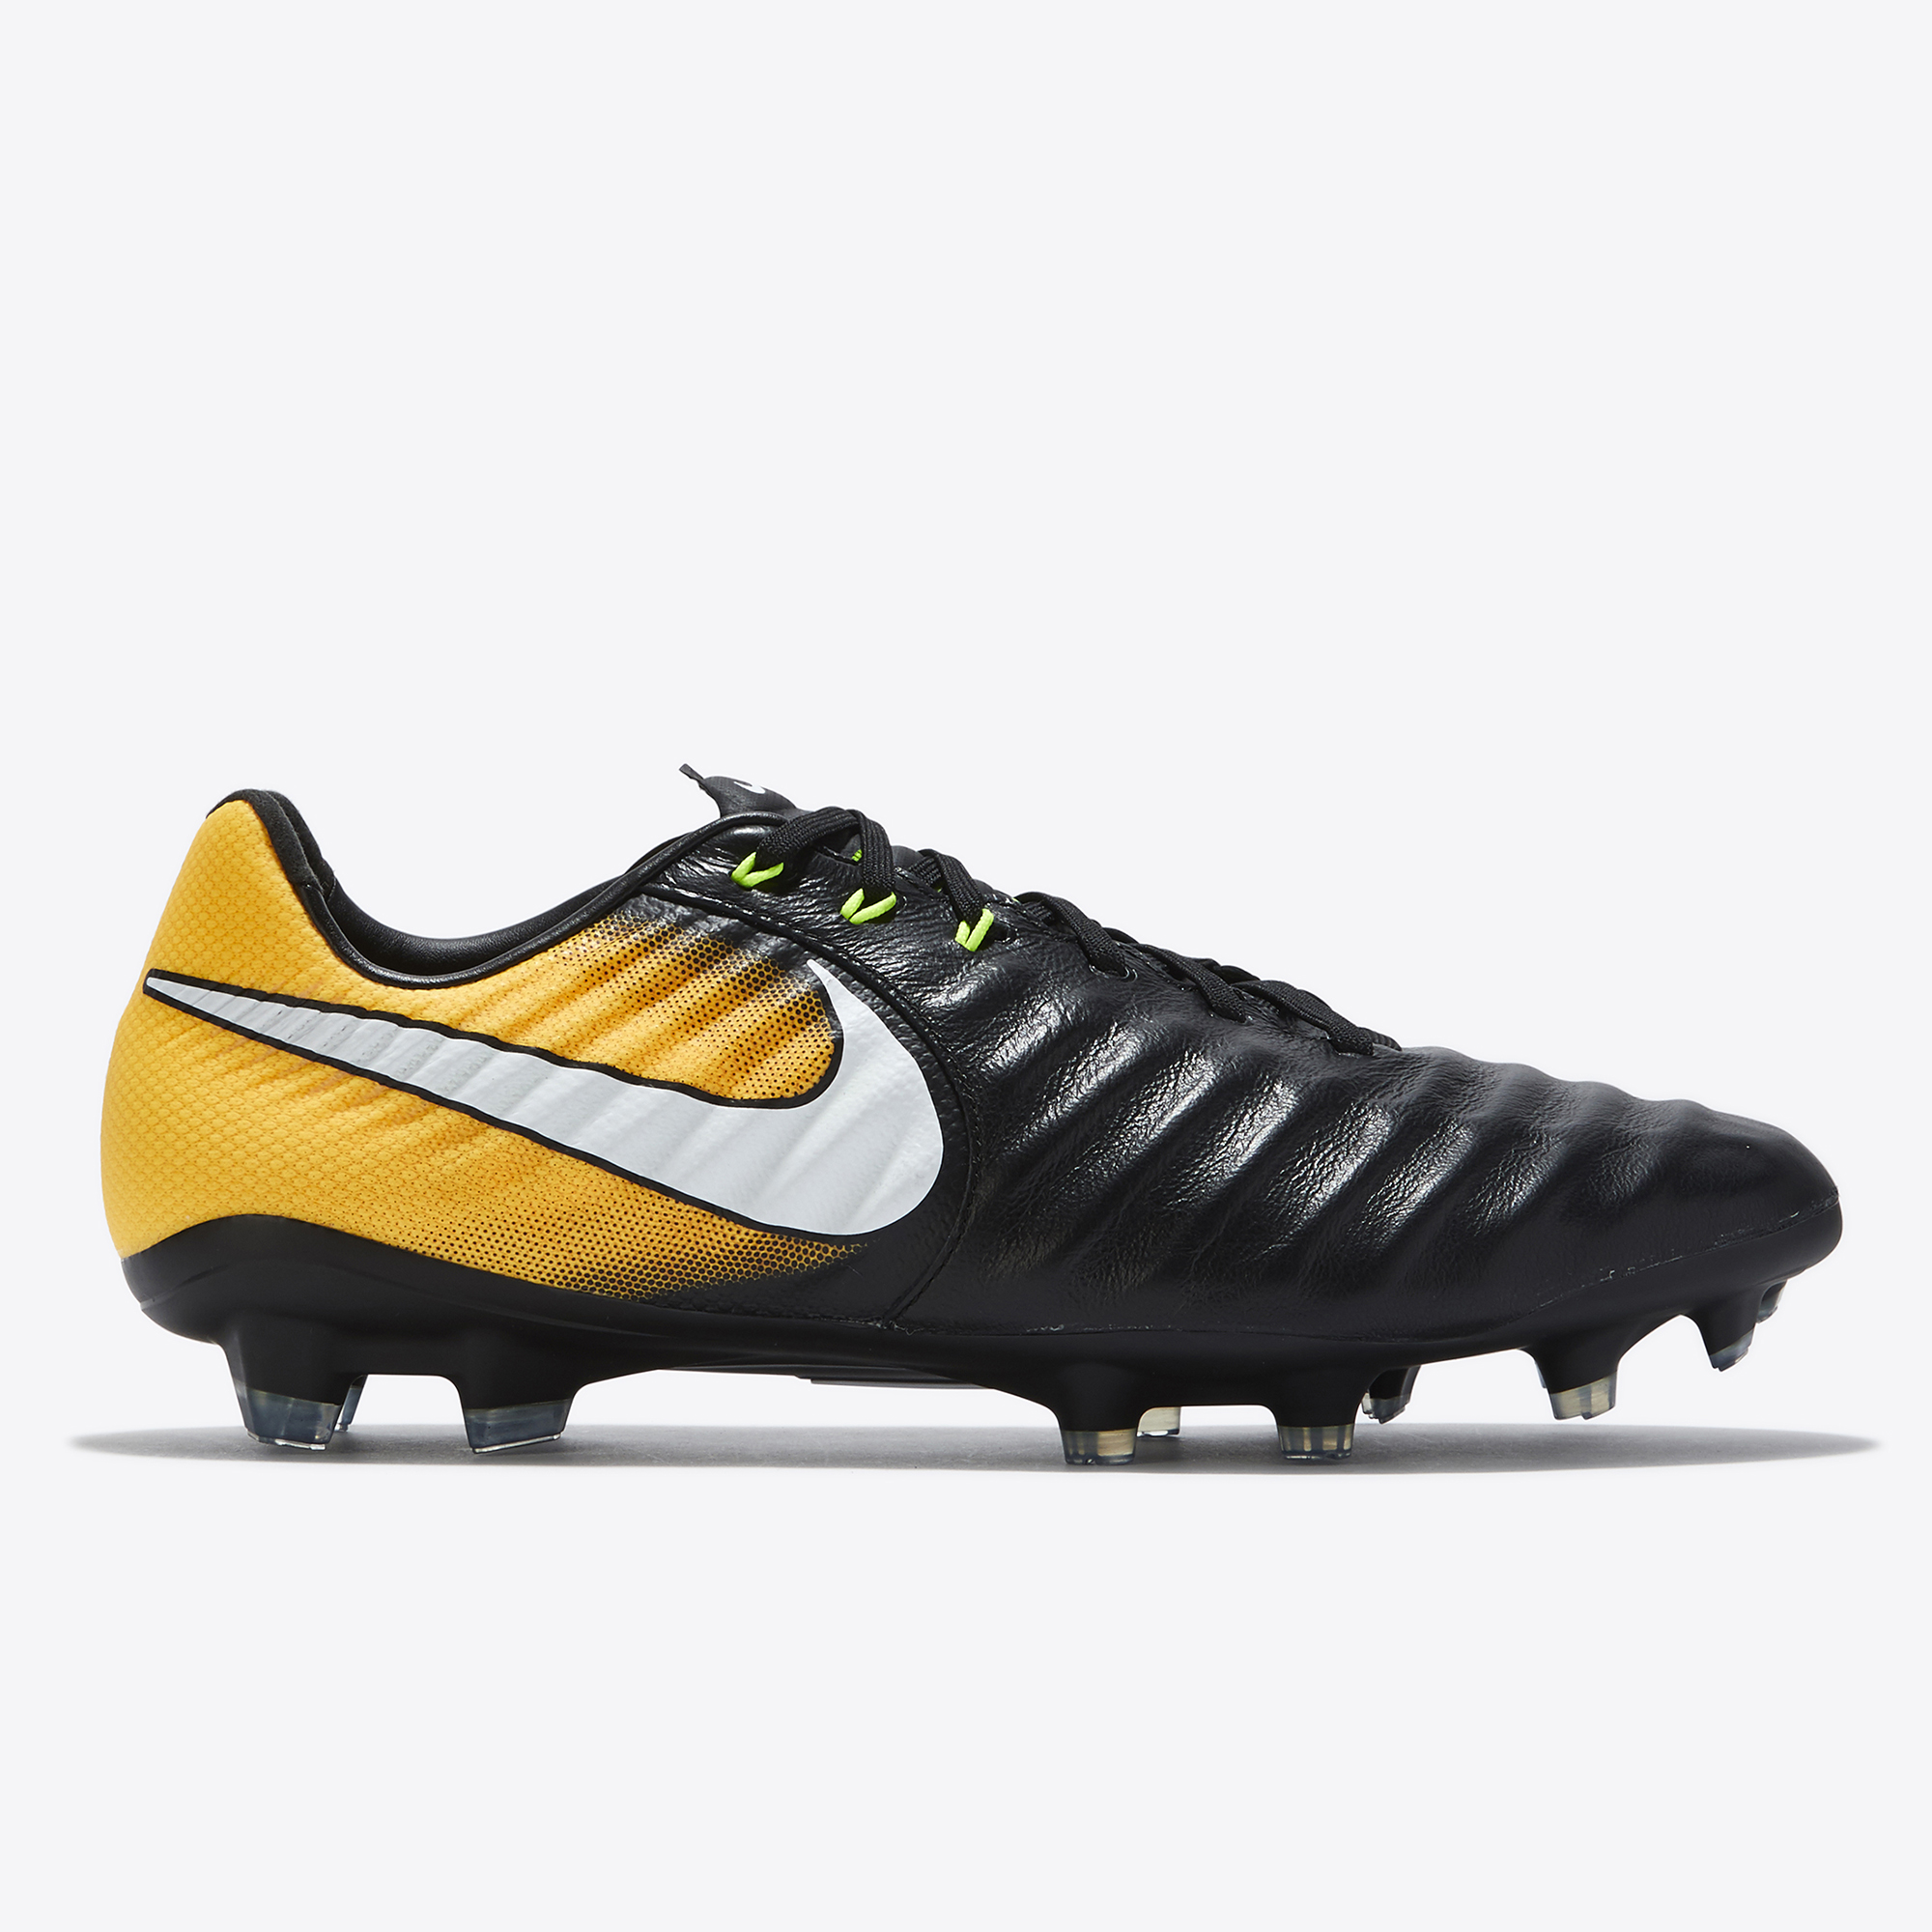 Nike Tiempo Legacy III Firm Ground Football Boots - Black/White/Laser